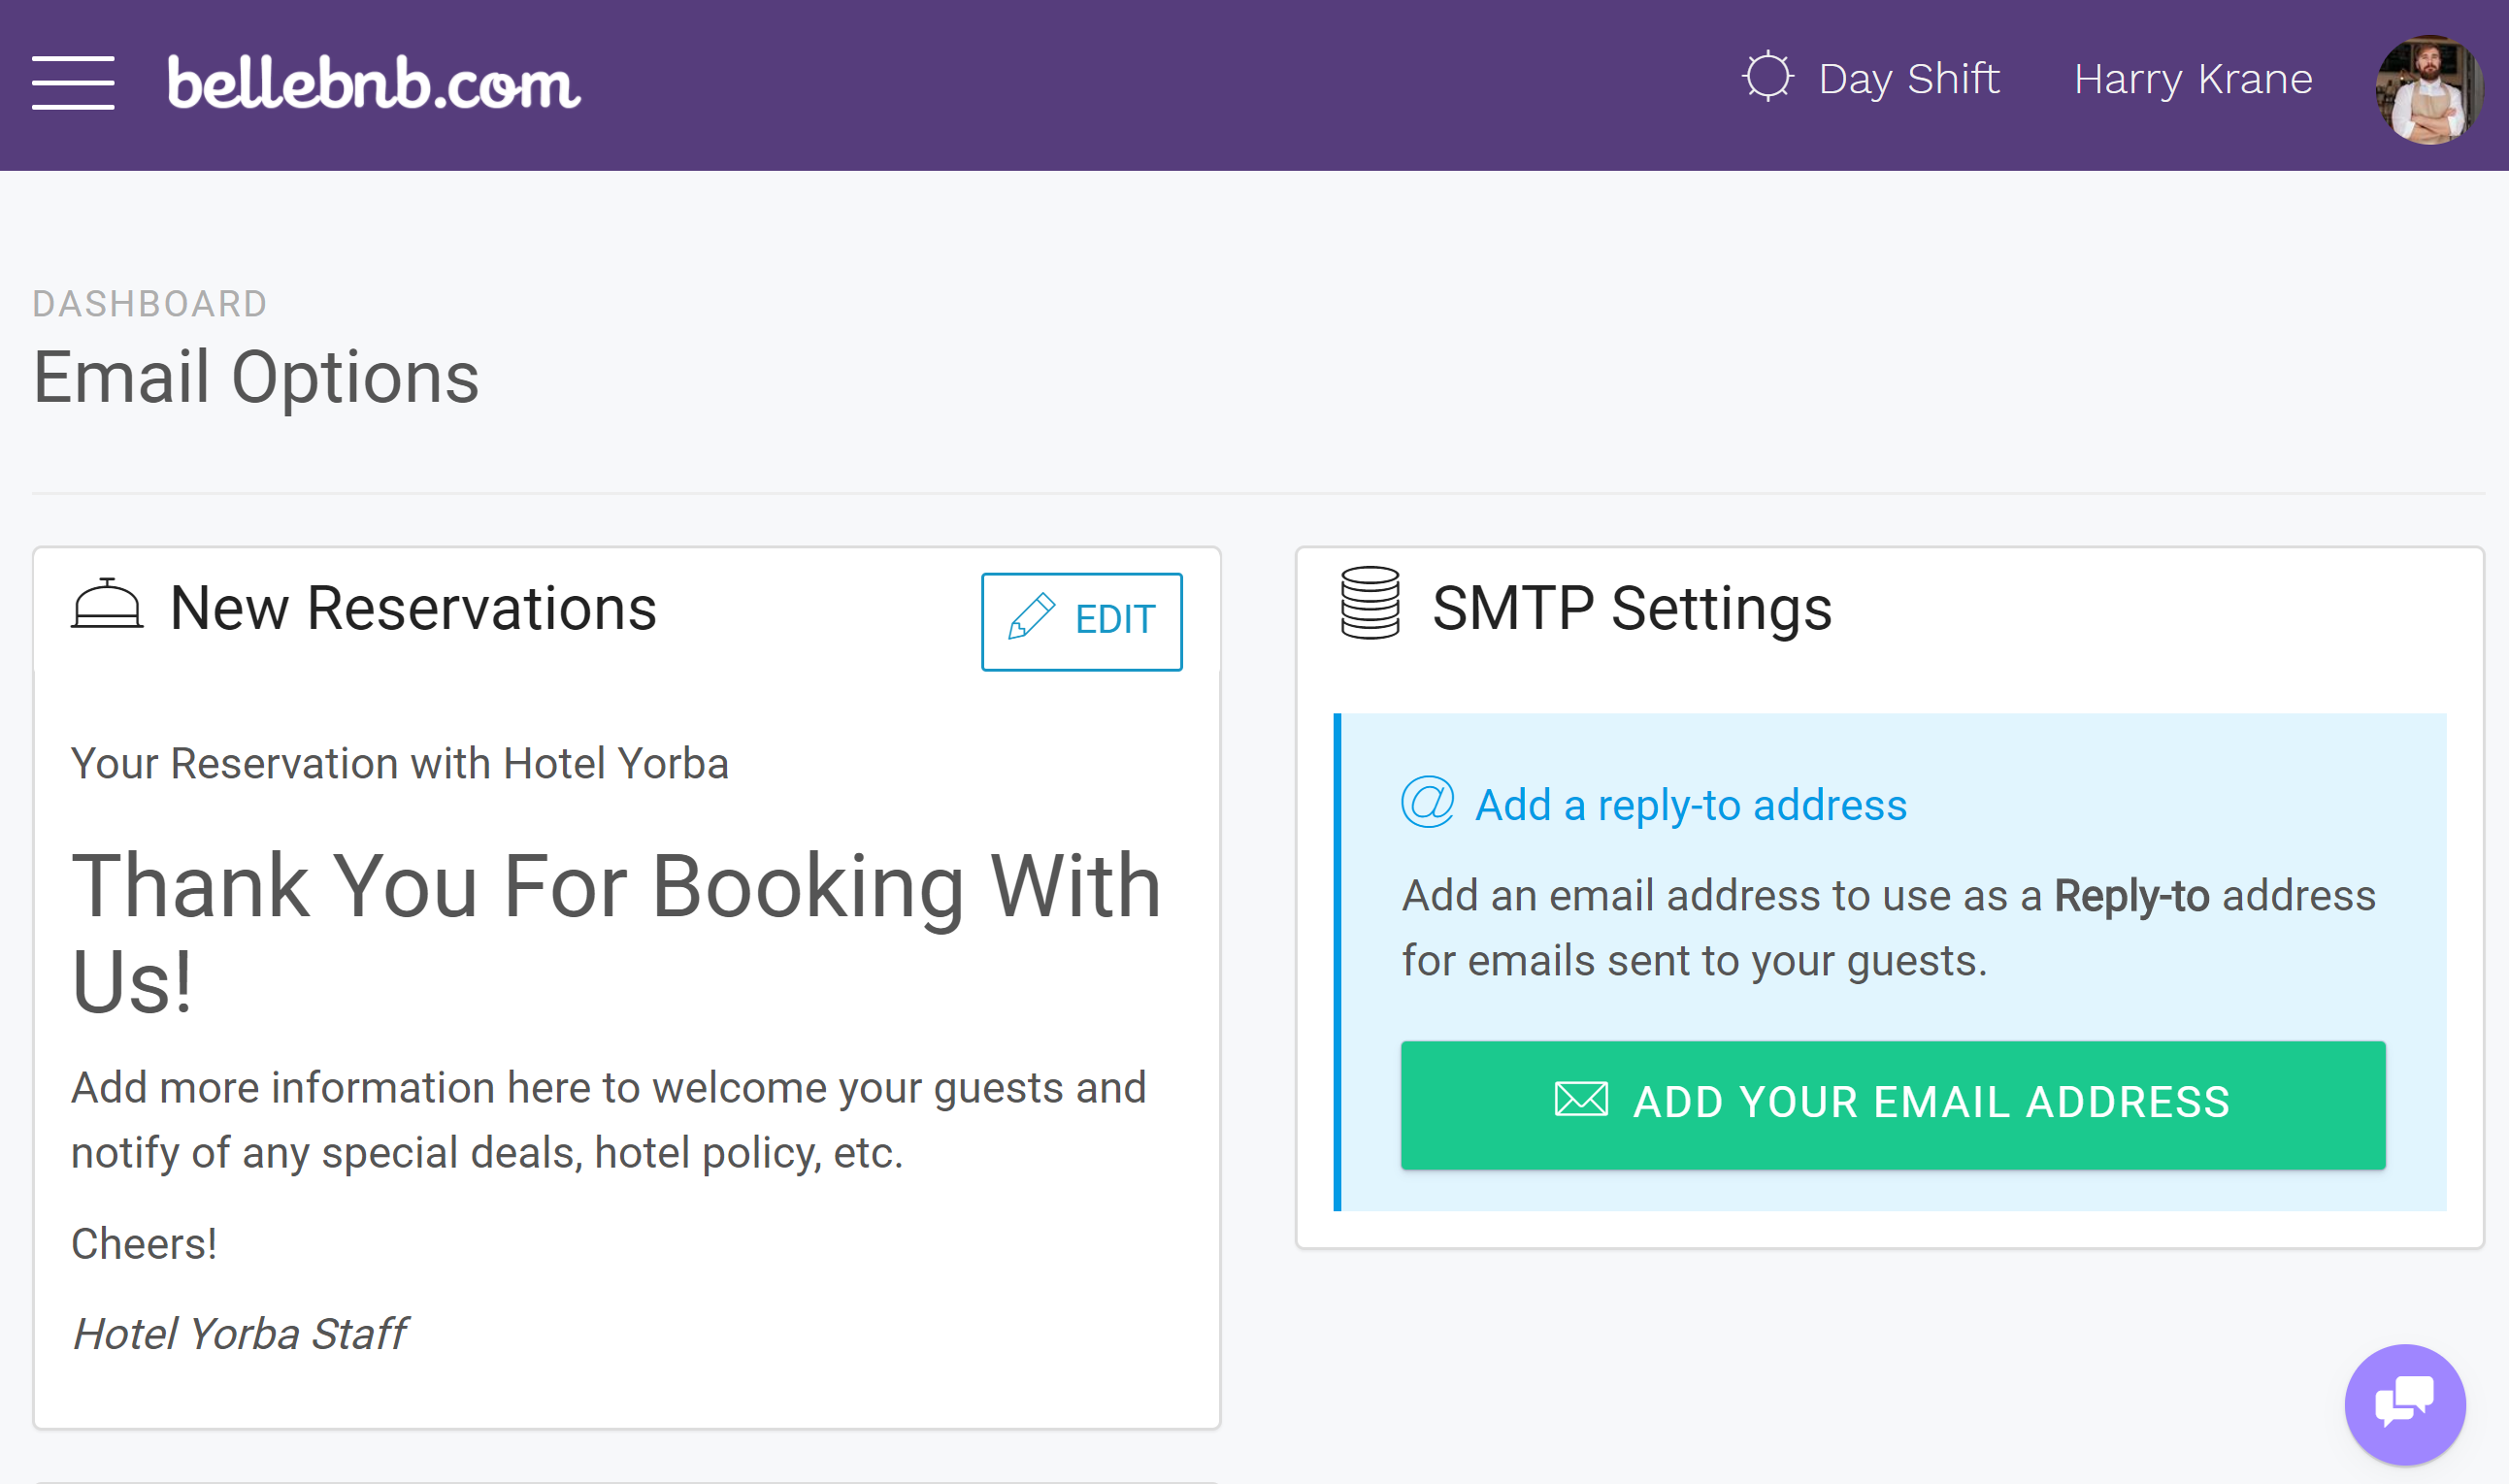 Hotel CRM Customer Relationship Management, Hotel Management HTML Emails You can now create custom emails for your daily hotel activities. You can create a custom message for new reservations, check-outs, and cancellations. Edit your messages in HTML to send out automatically as part of your bookings flow.